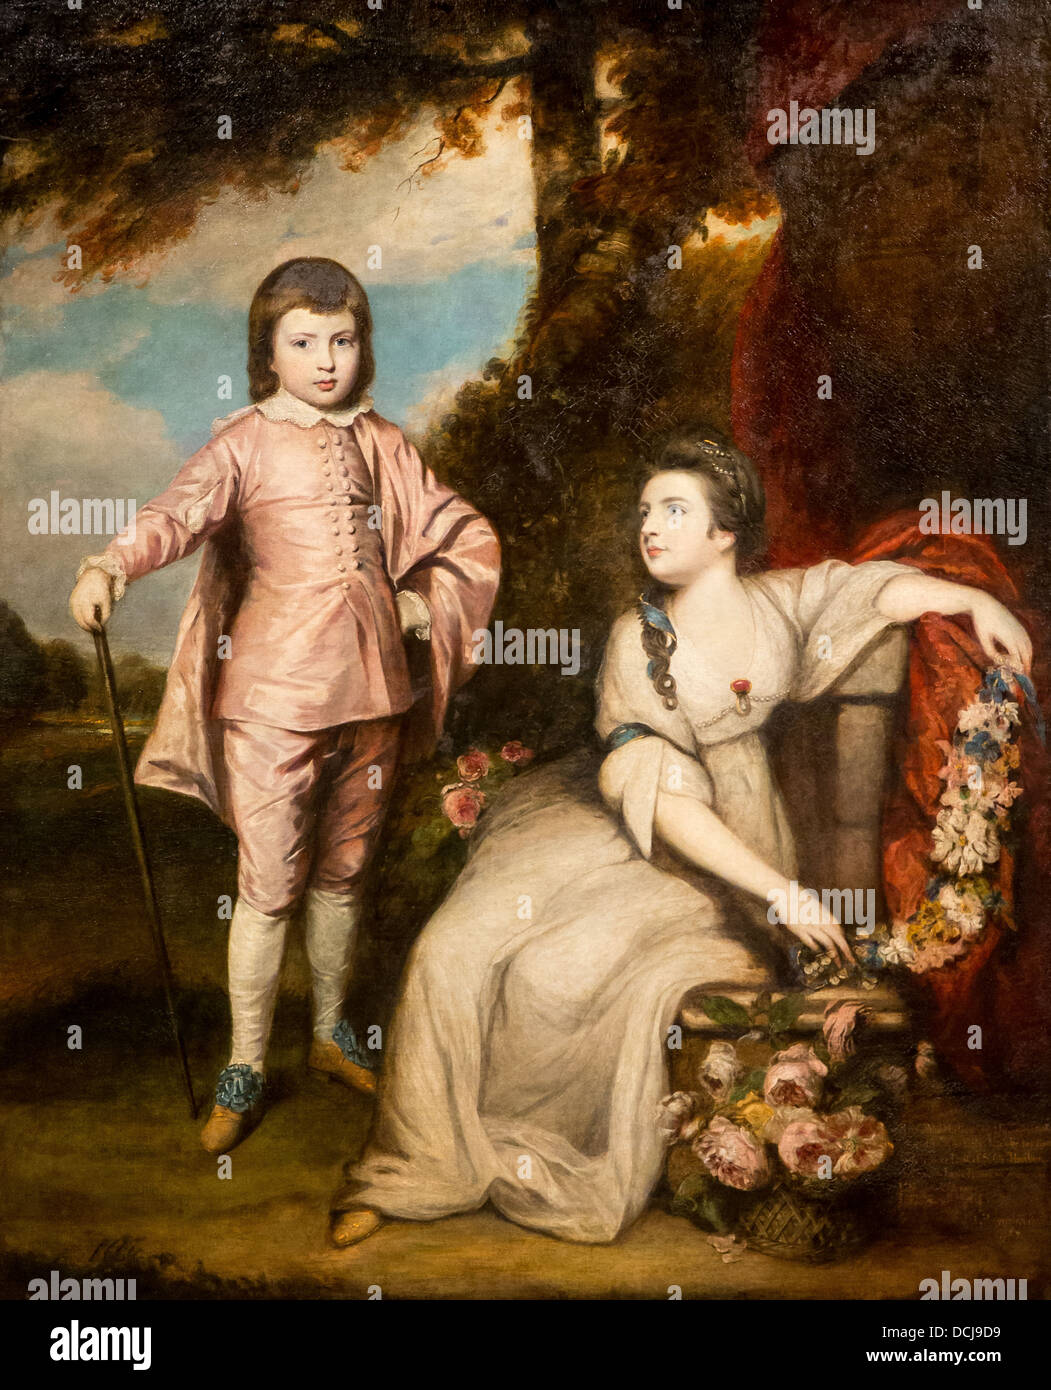 18th century  -  George Capel, Viscount Malden, and Lady Elizabeth Capel  - Sir Joshua Reynolds (1768) Oil on canvas - Stock Image